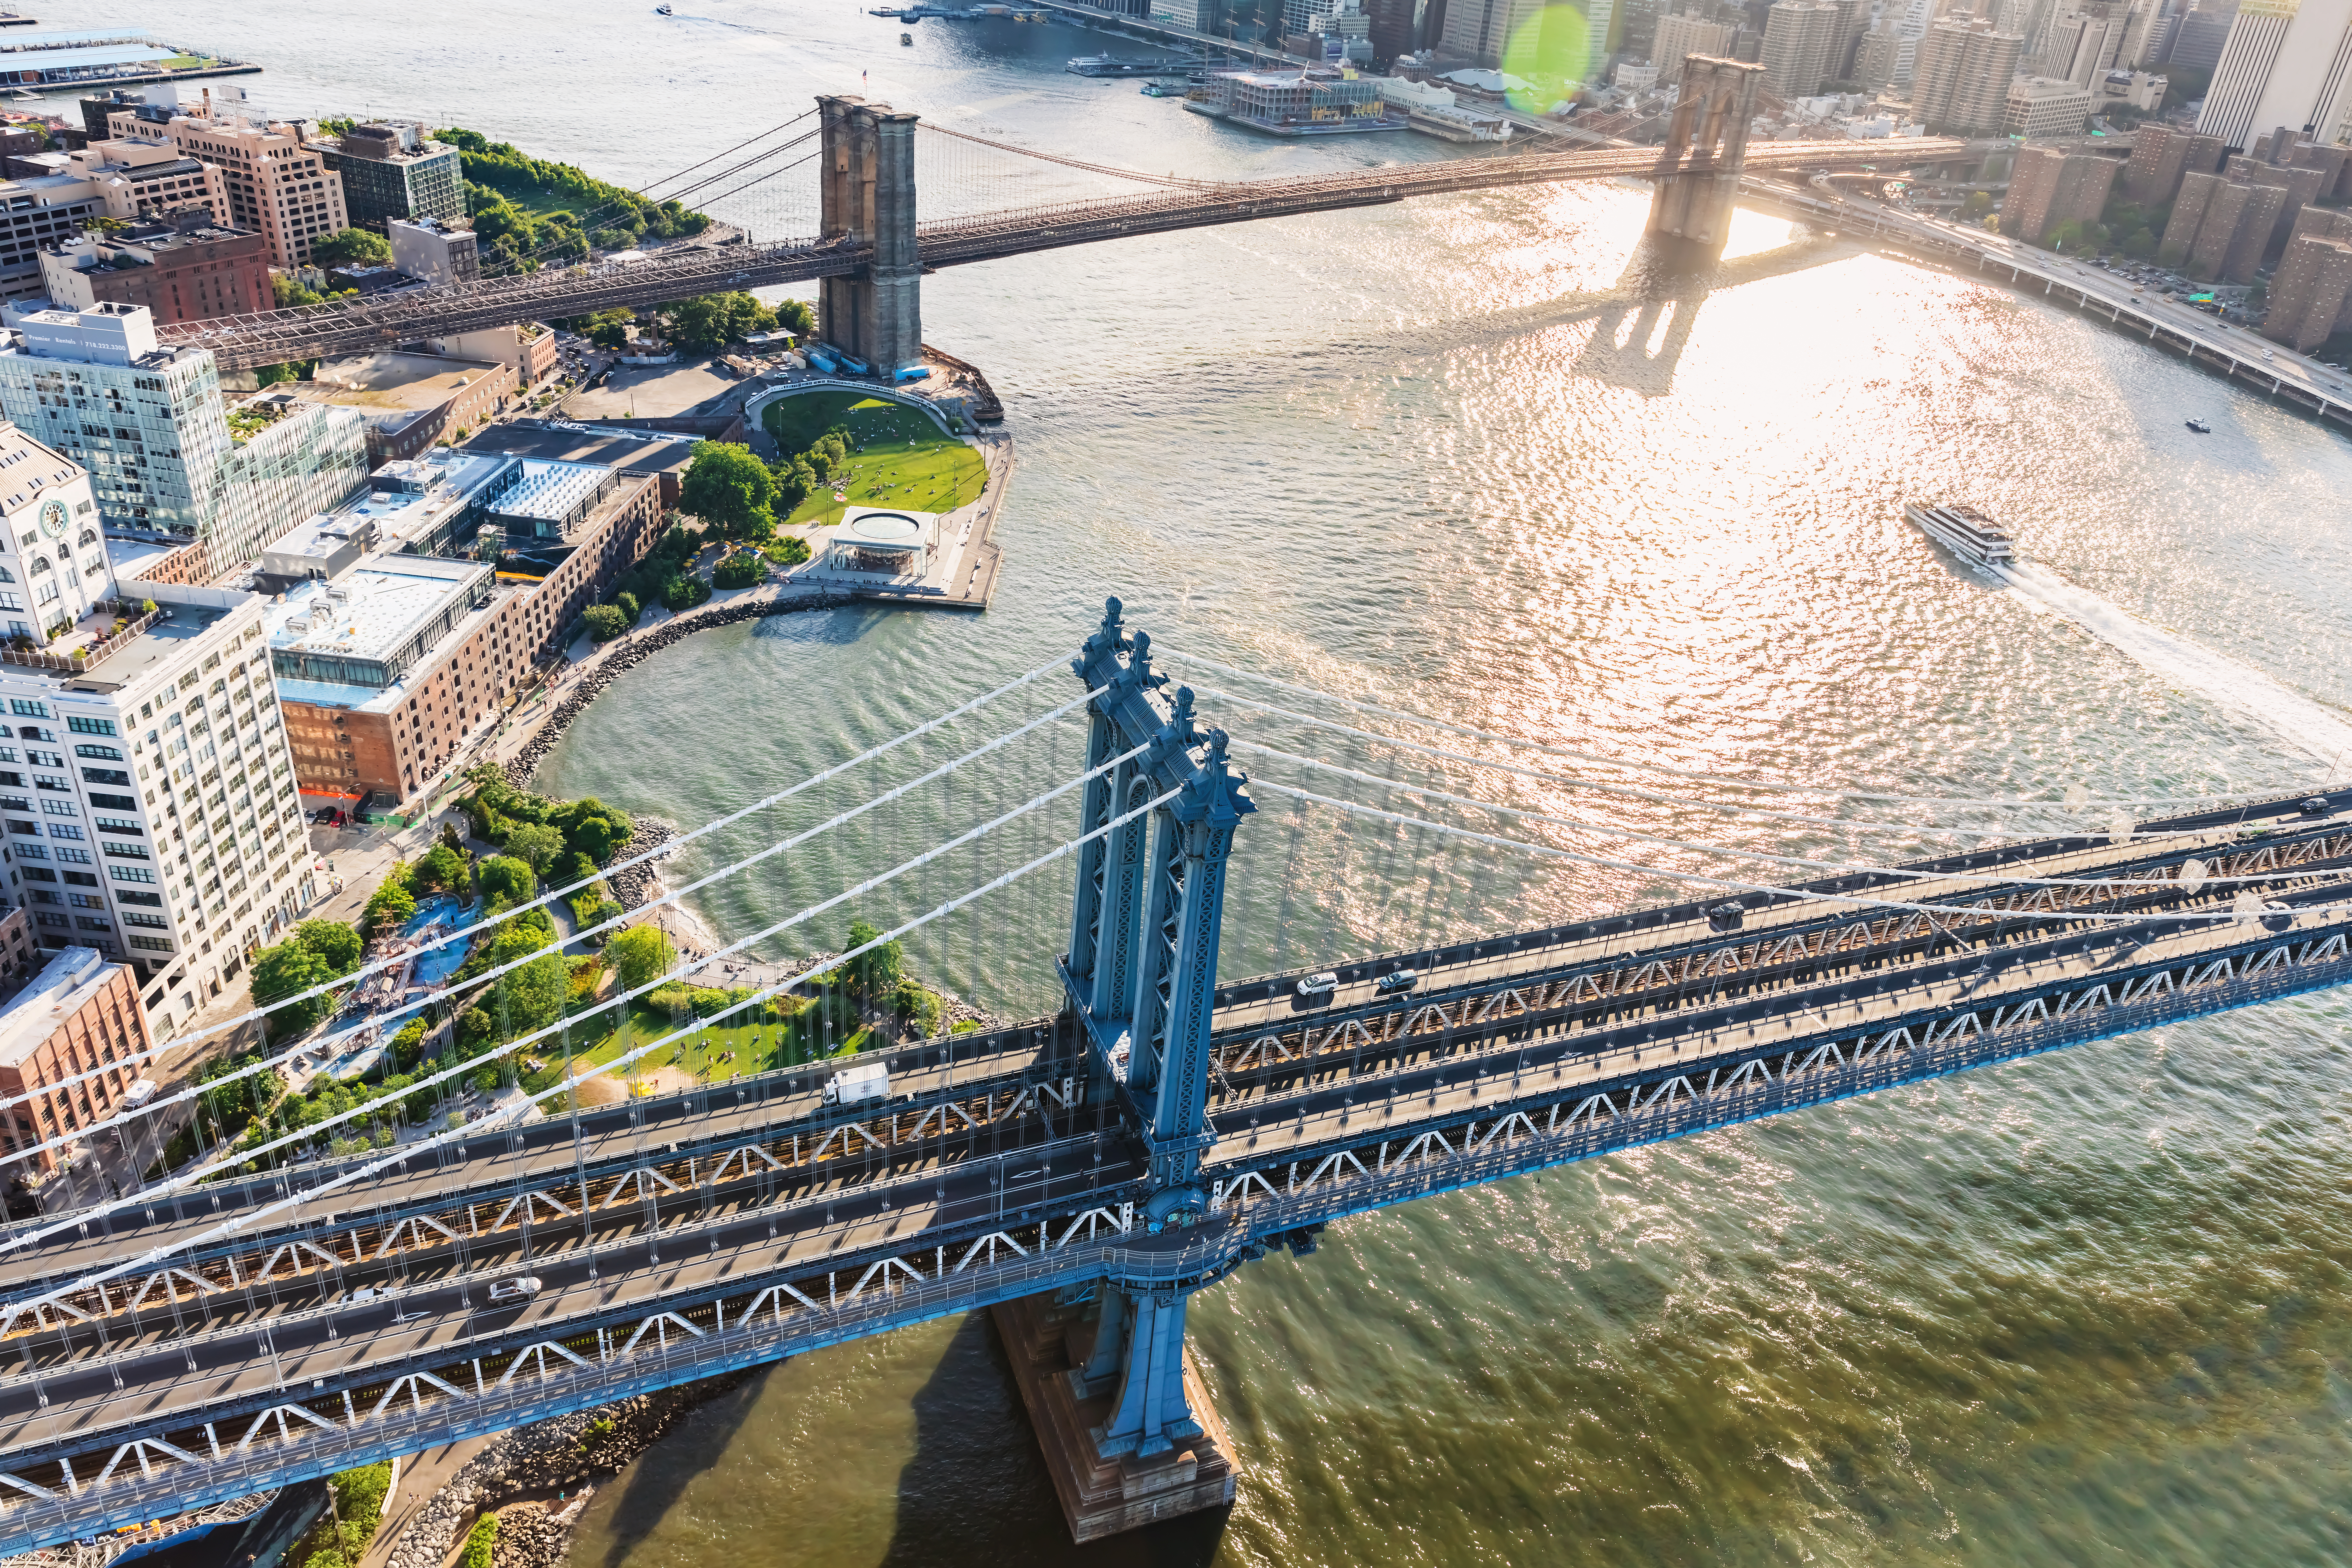 An areal shot of the East River with two bridges spanning across it.